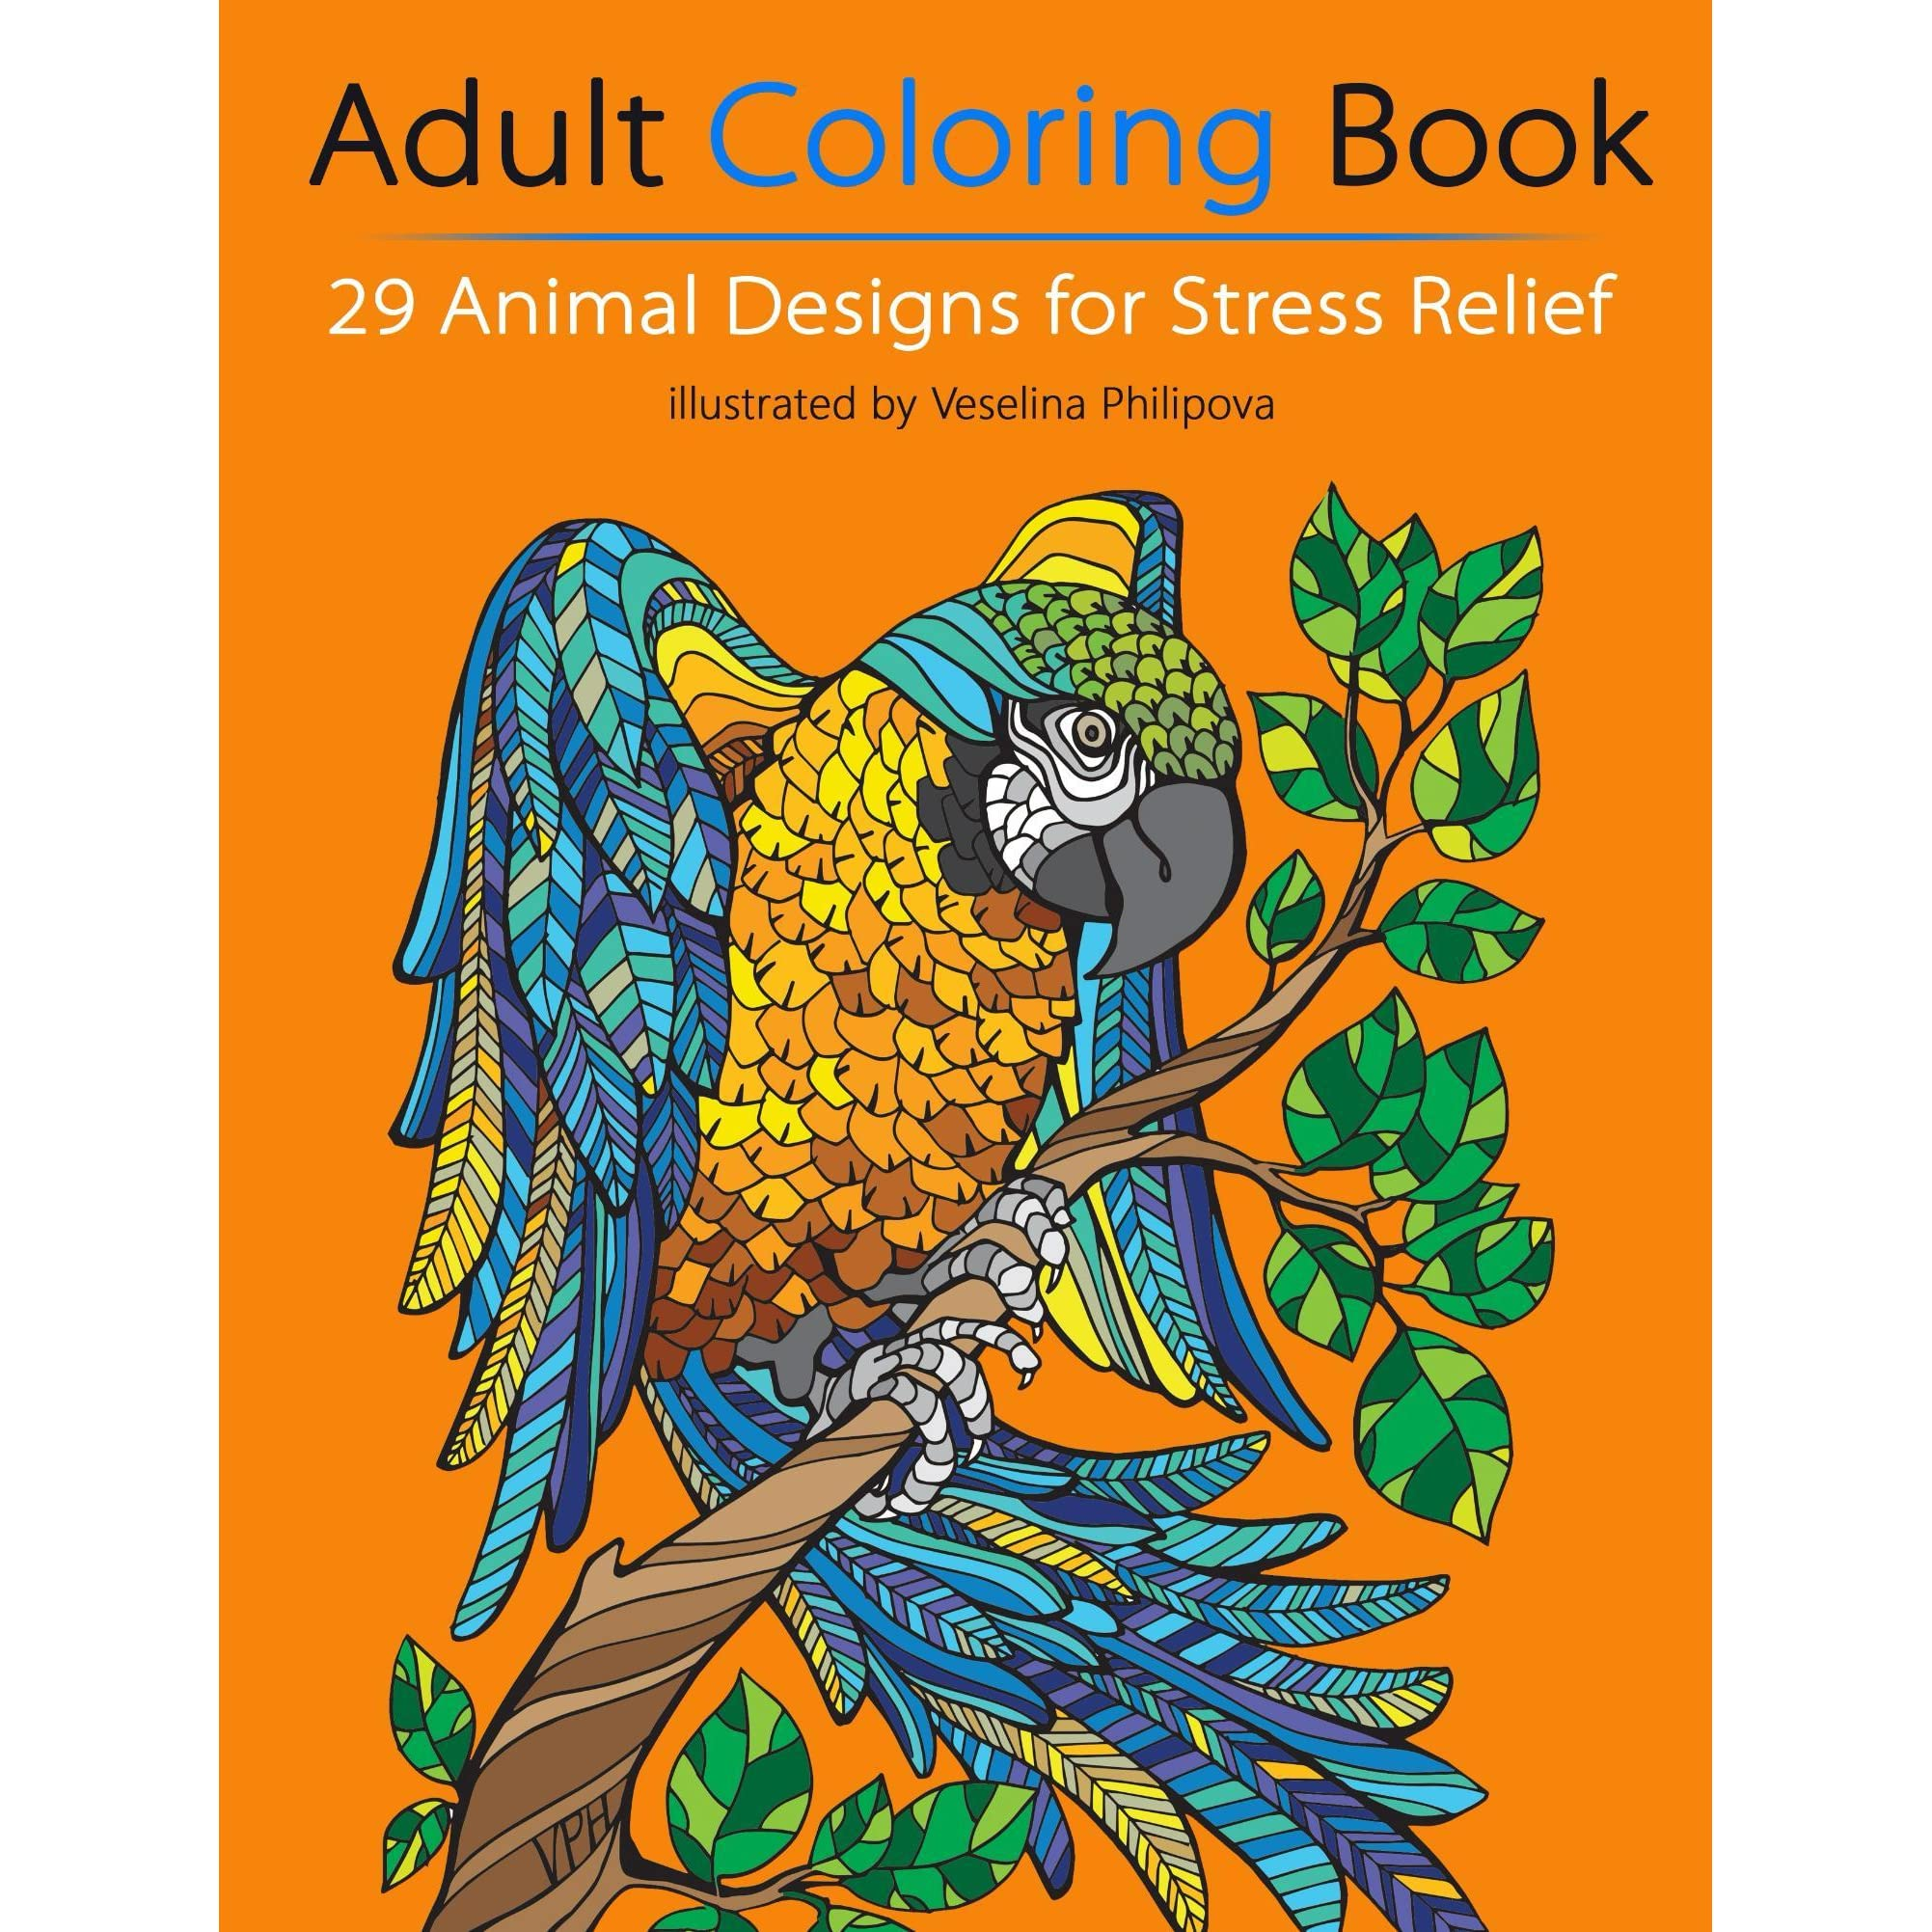 Book Giveaway For Adult Coloring Book 29 Animal Designs For Stress Relief By Rangel Stoilov Feb